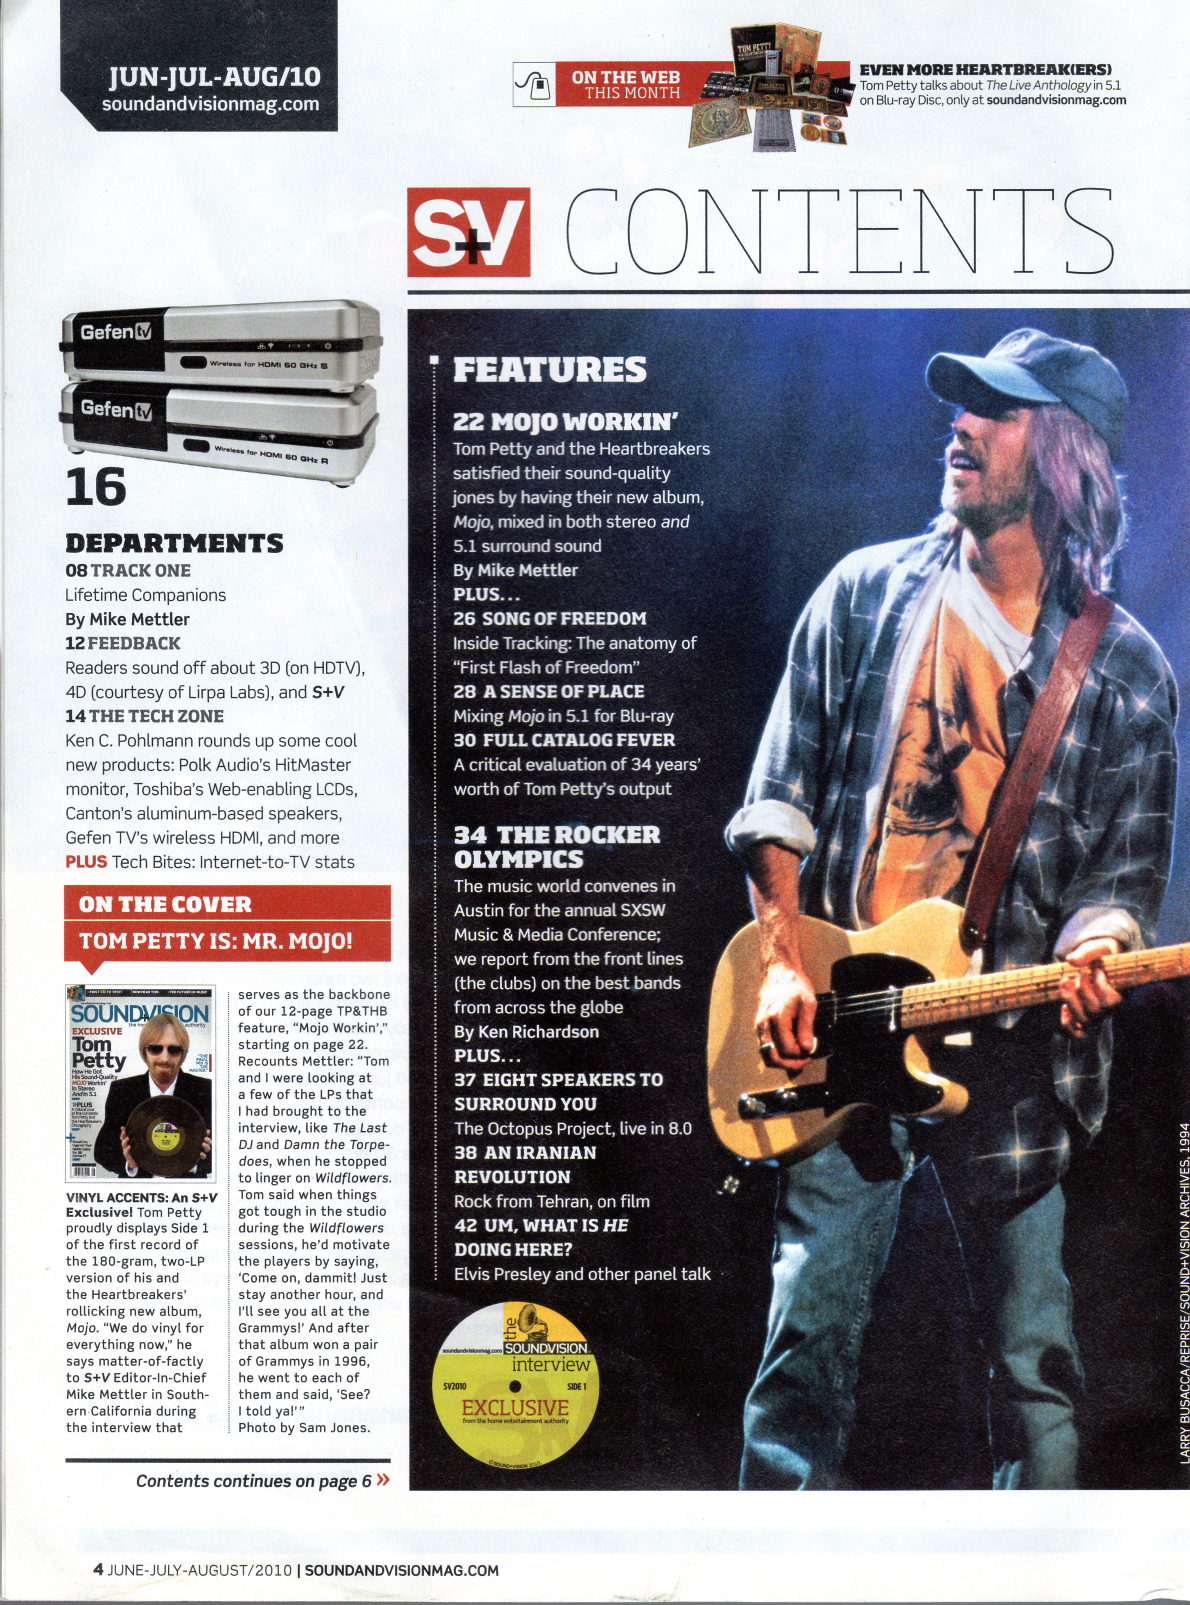 Sound & Vision - June-July-August 2010 - The Petty Archives